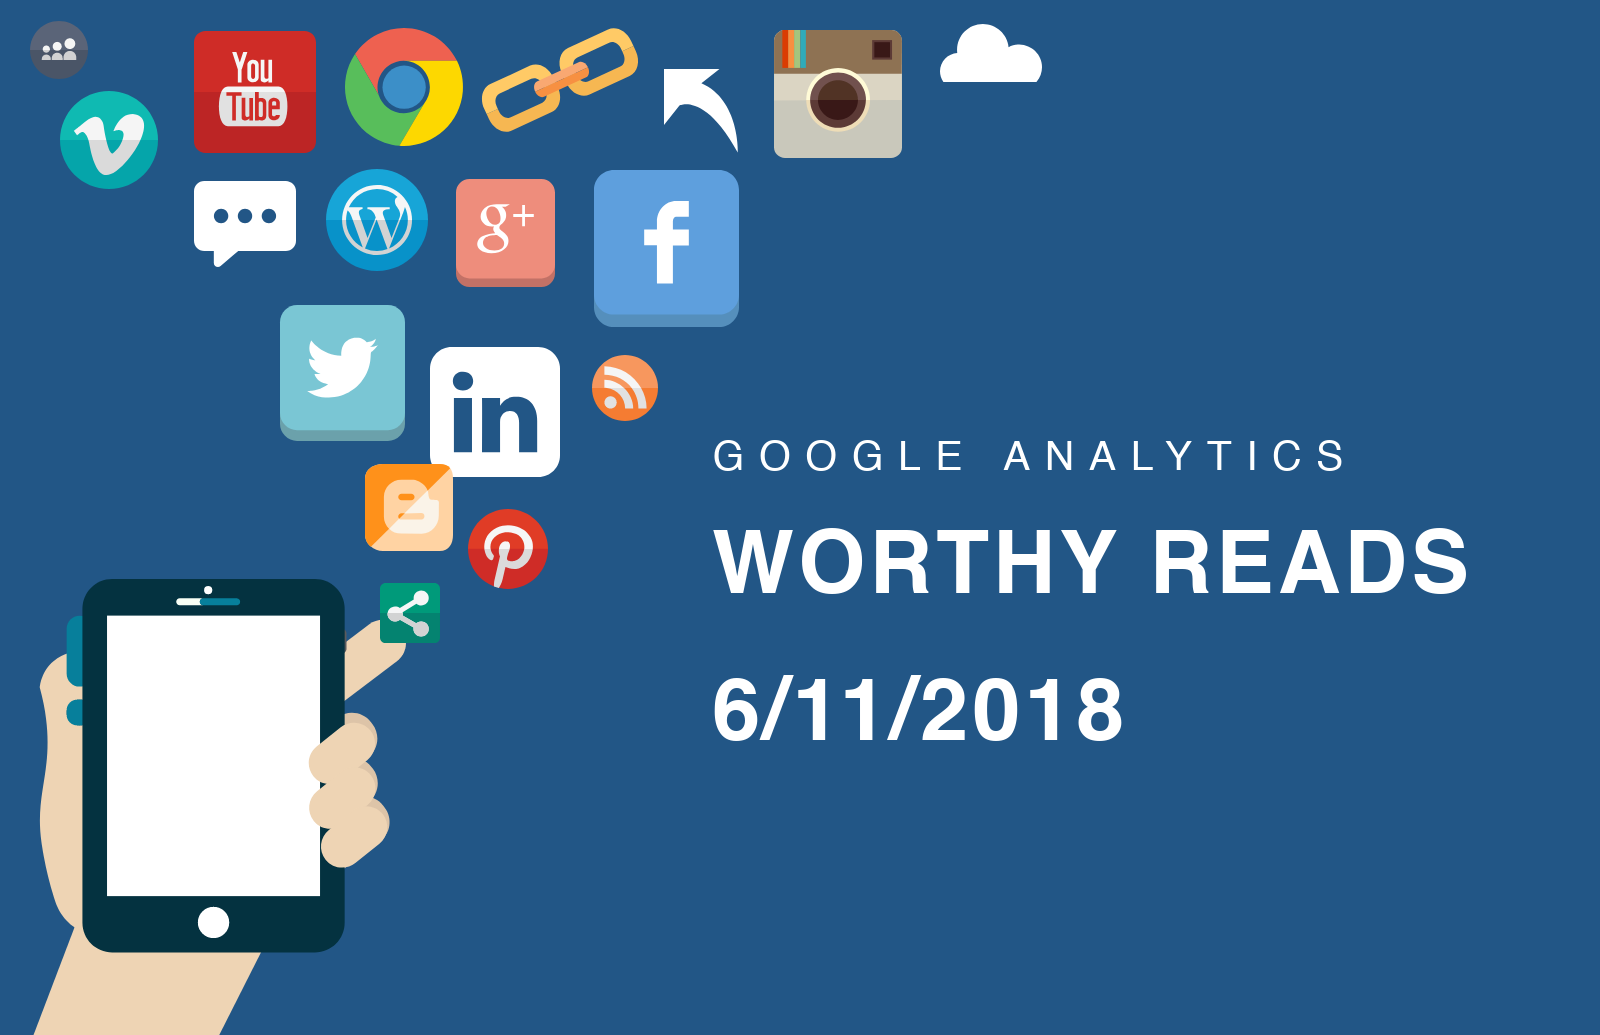 Worthy reads on social media in Google Analytics